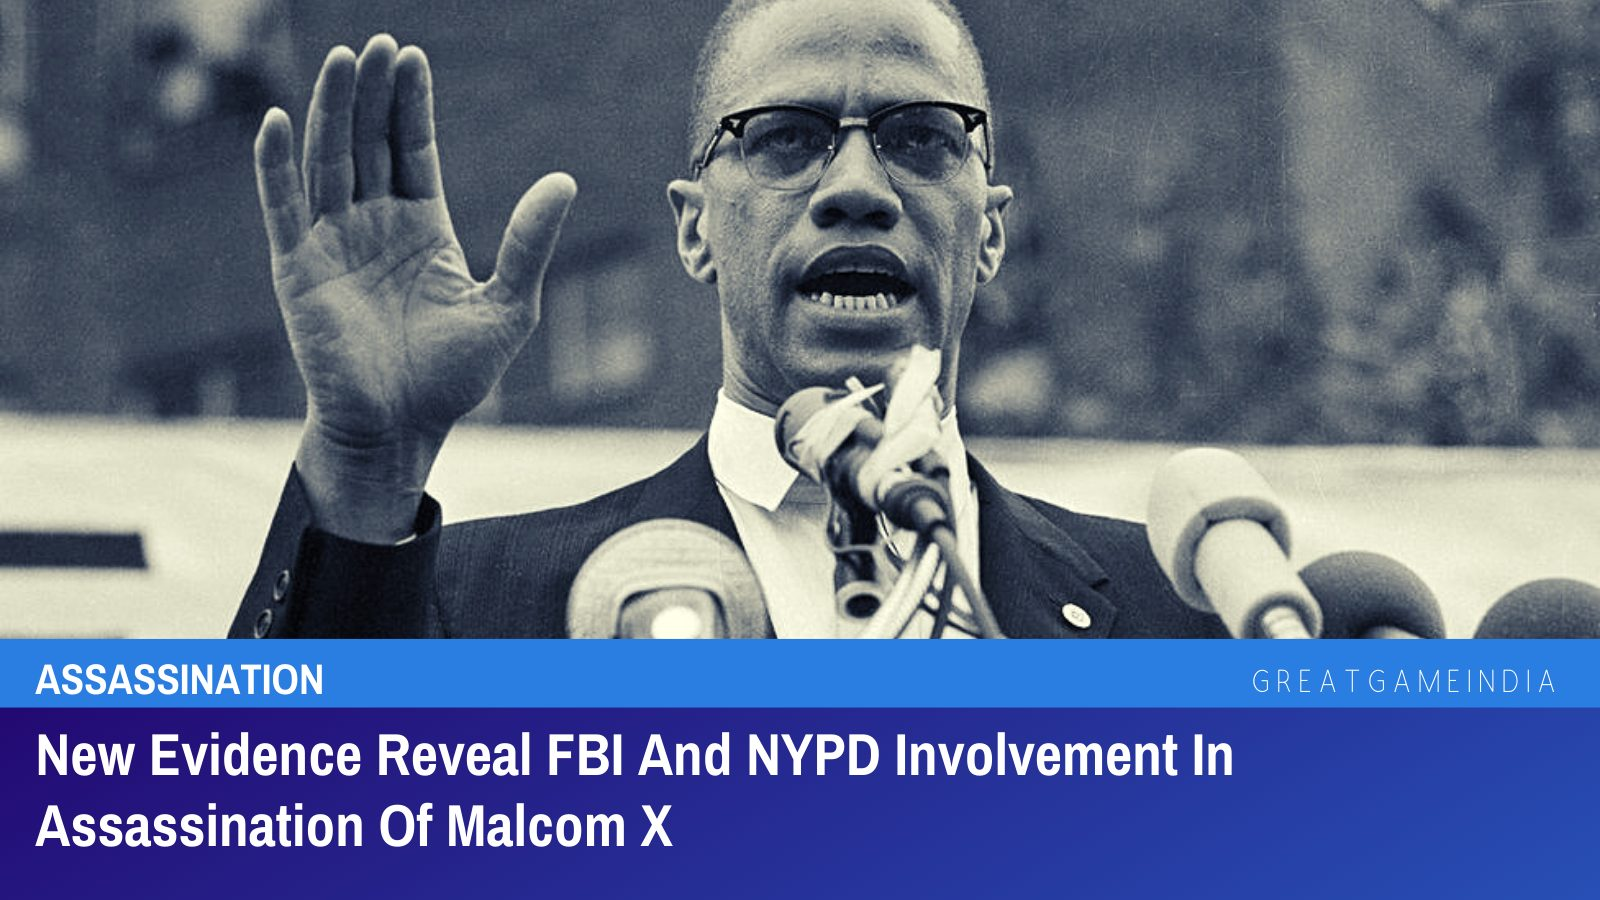 New Evidence Reveal FBI And NYPD Involvement In Assassination Of Malcom X